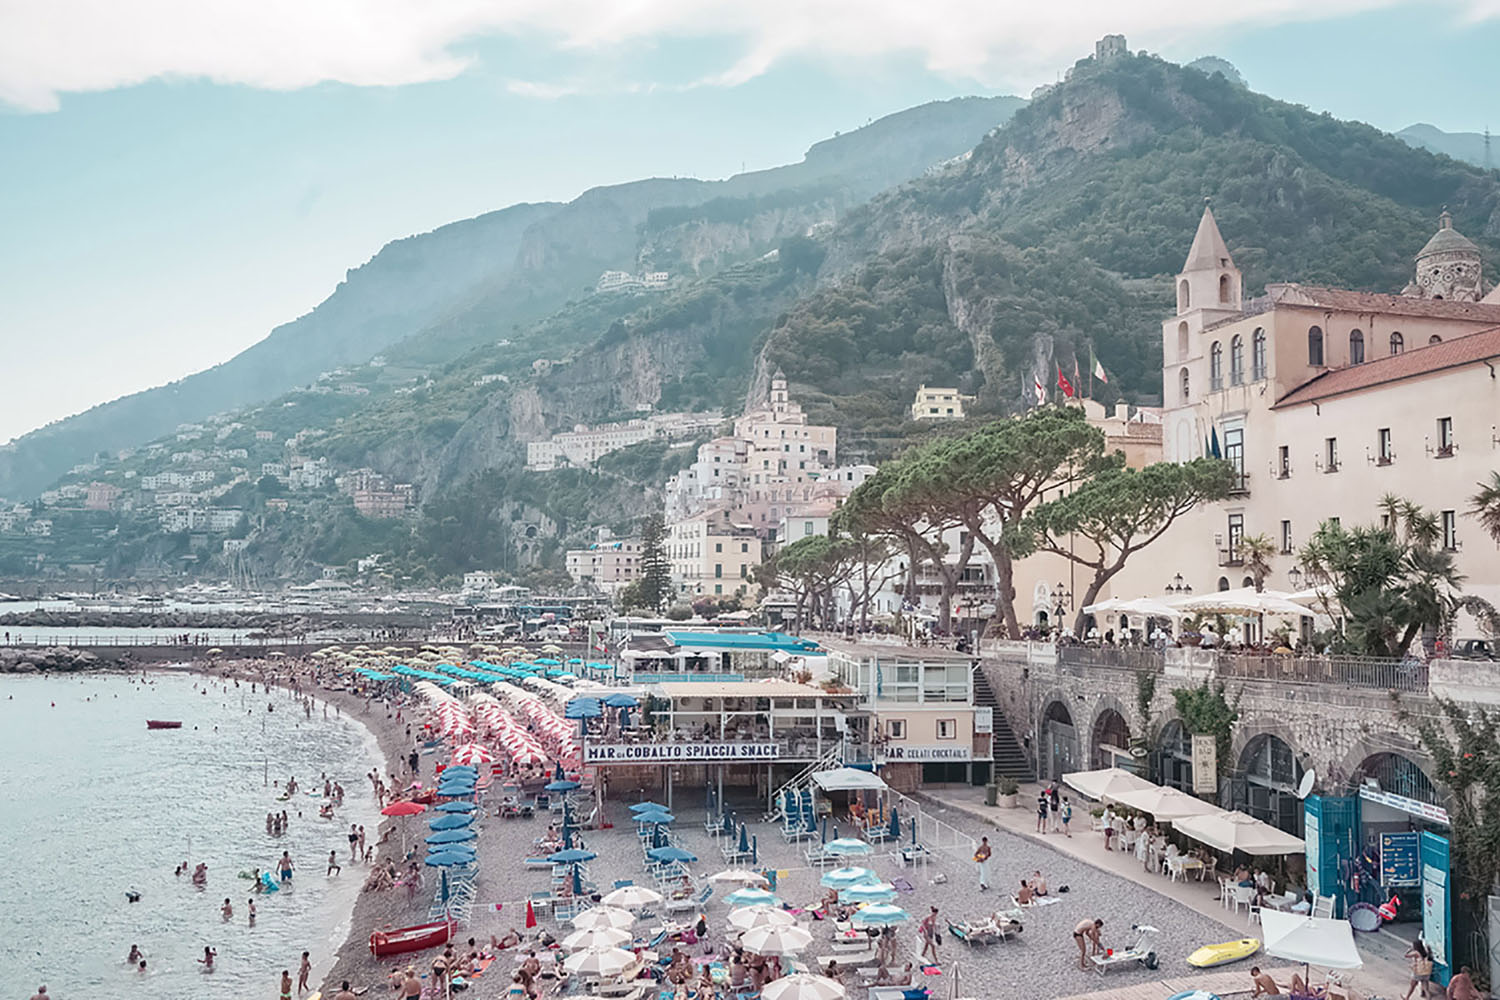 The town of Amalfi is incredibly special with its small town charm and stunning views of the sea.